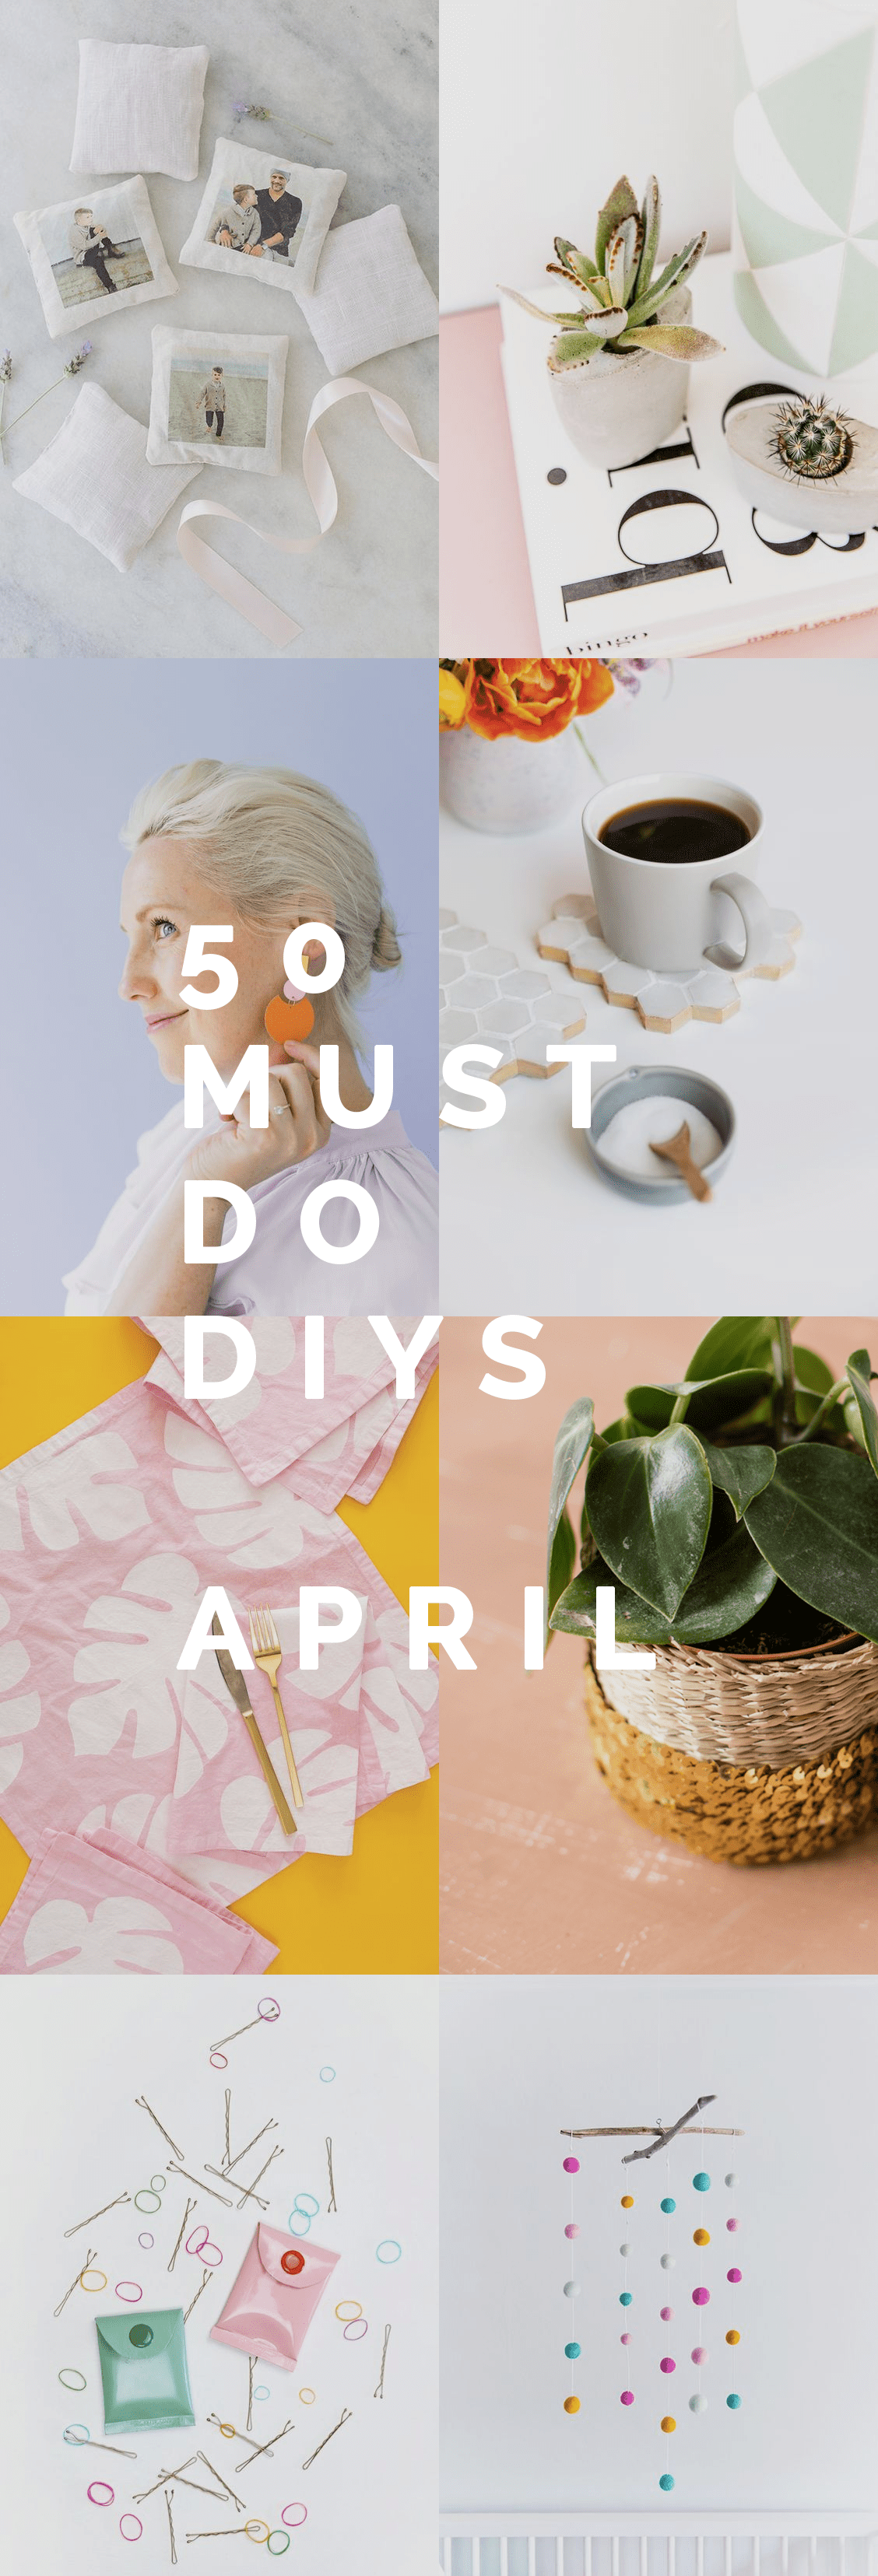 50 Must do DIYs April